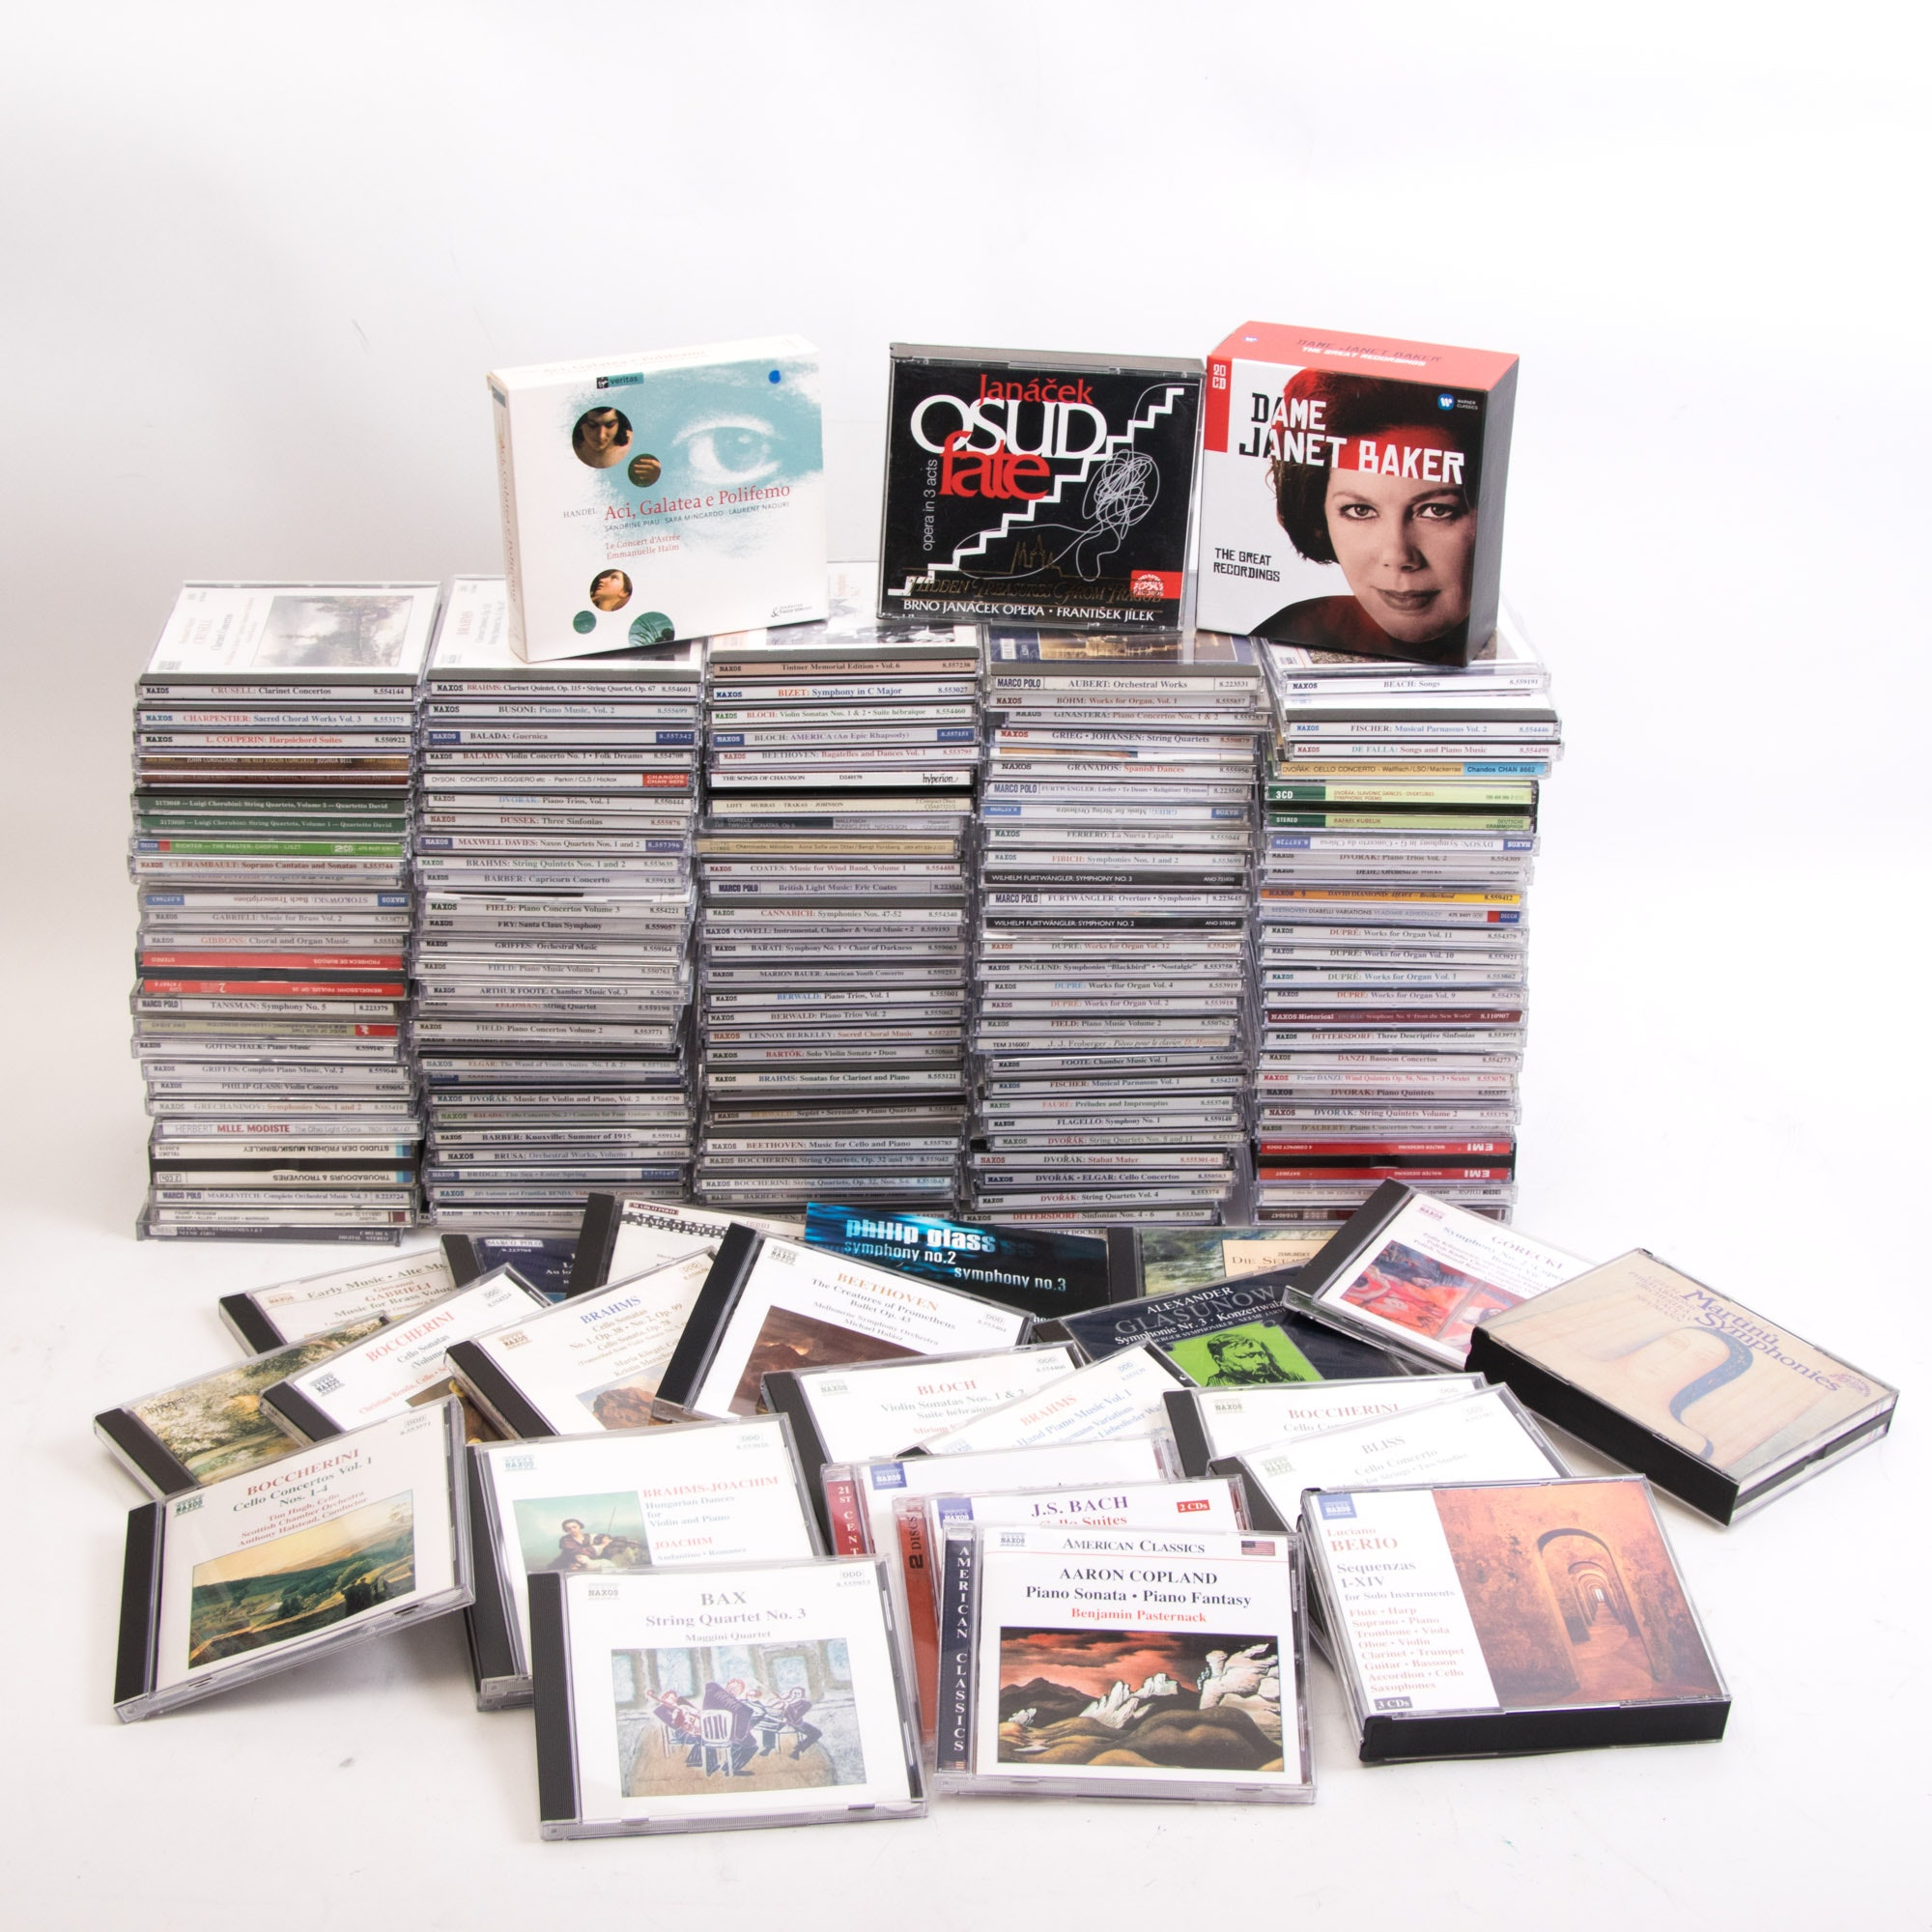 Assorted Collection of Classical and Orchestral CDs